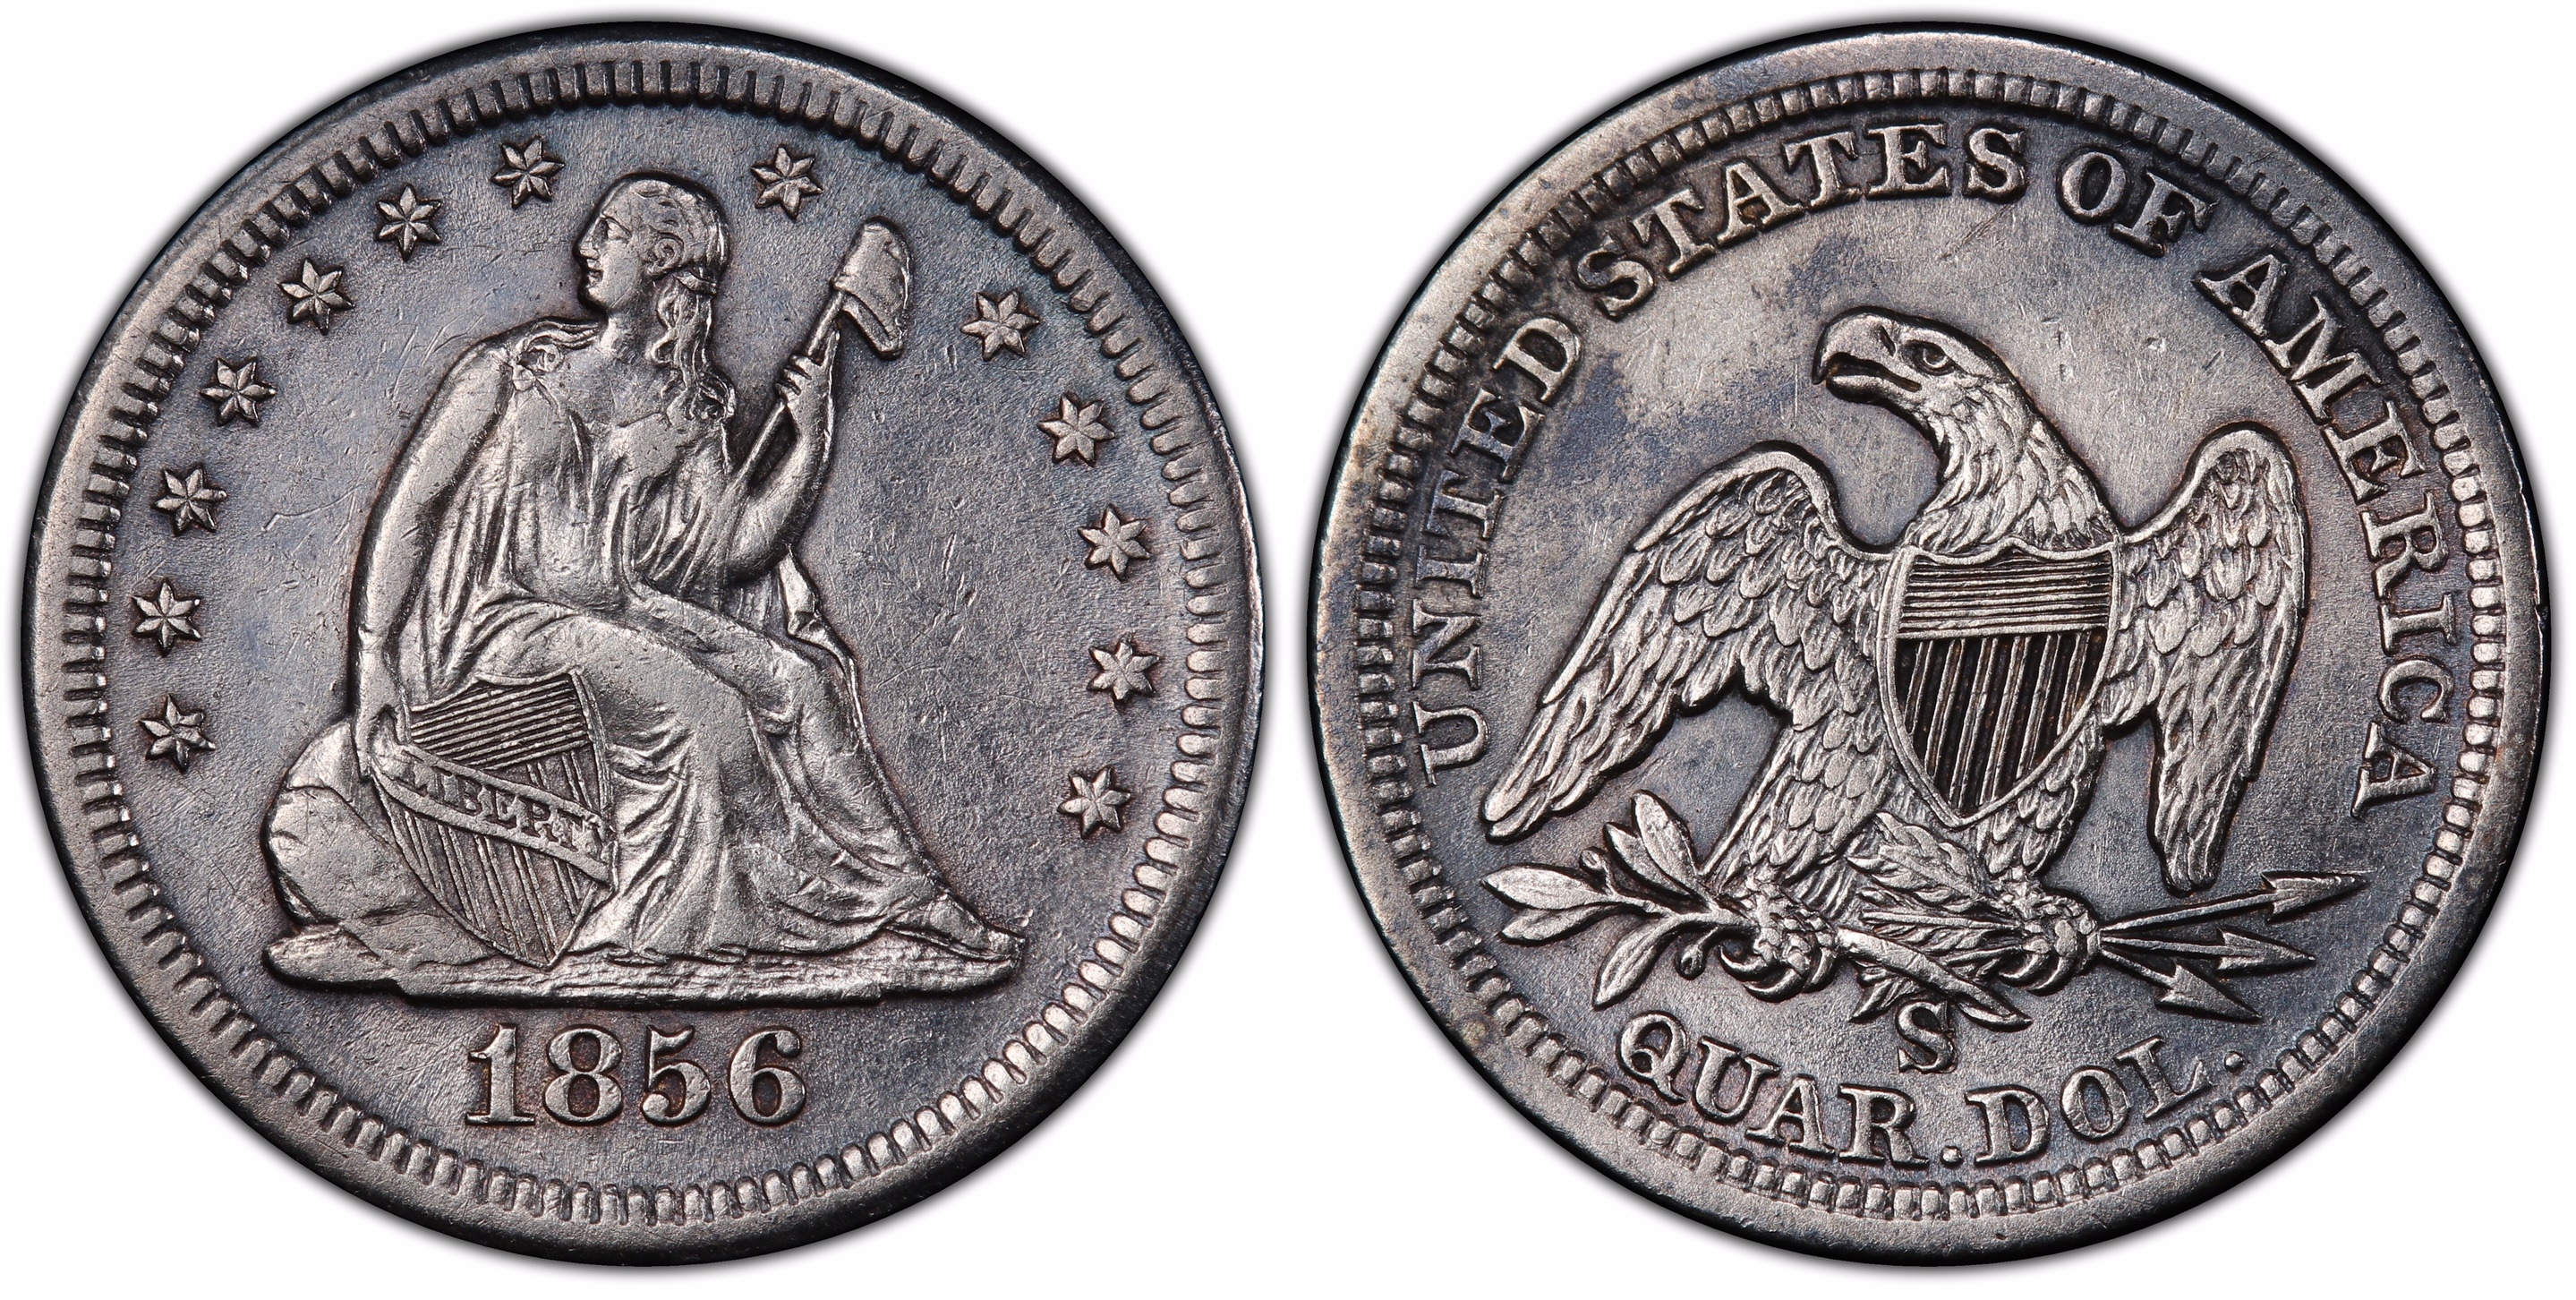 thumbnail image for Rare 1856-S/s quarters discovered in amazing SS Central America treasure